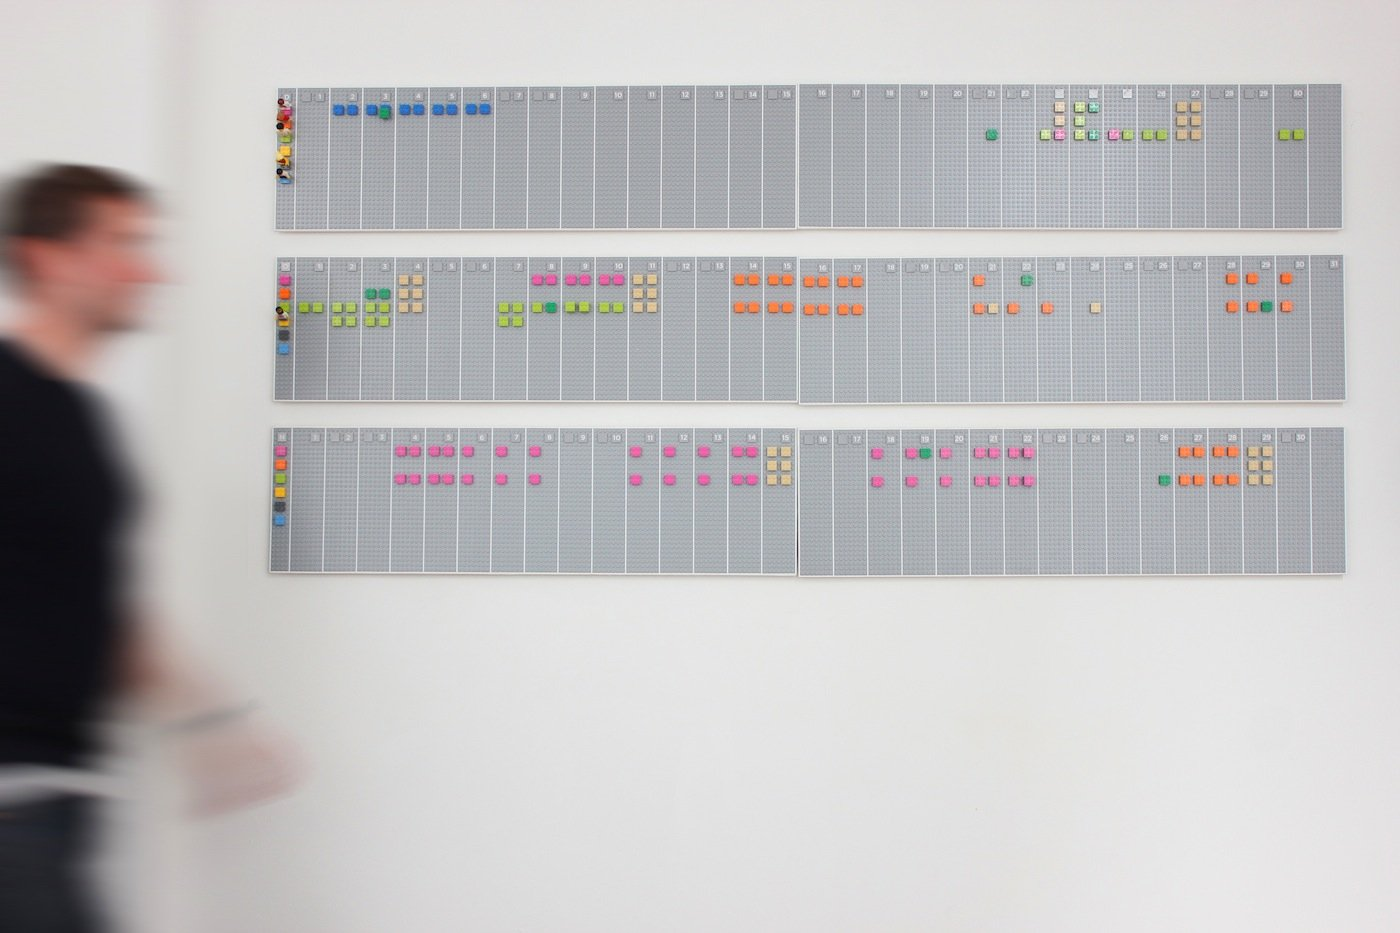 LEGO Calendar to Sync with iCal and Google